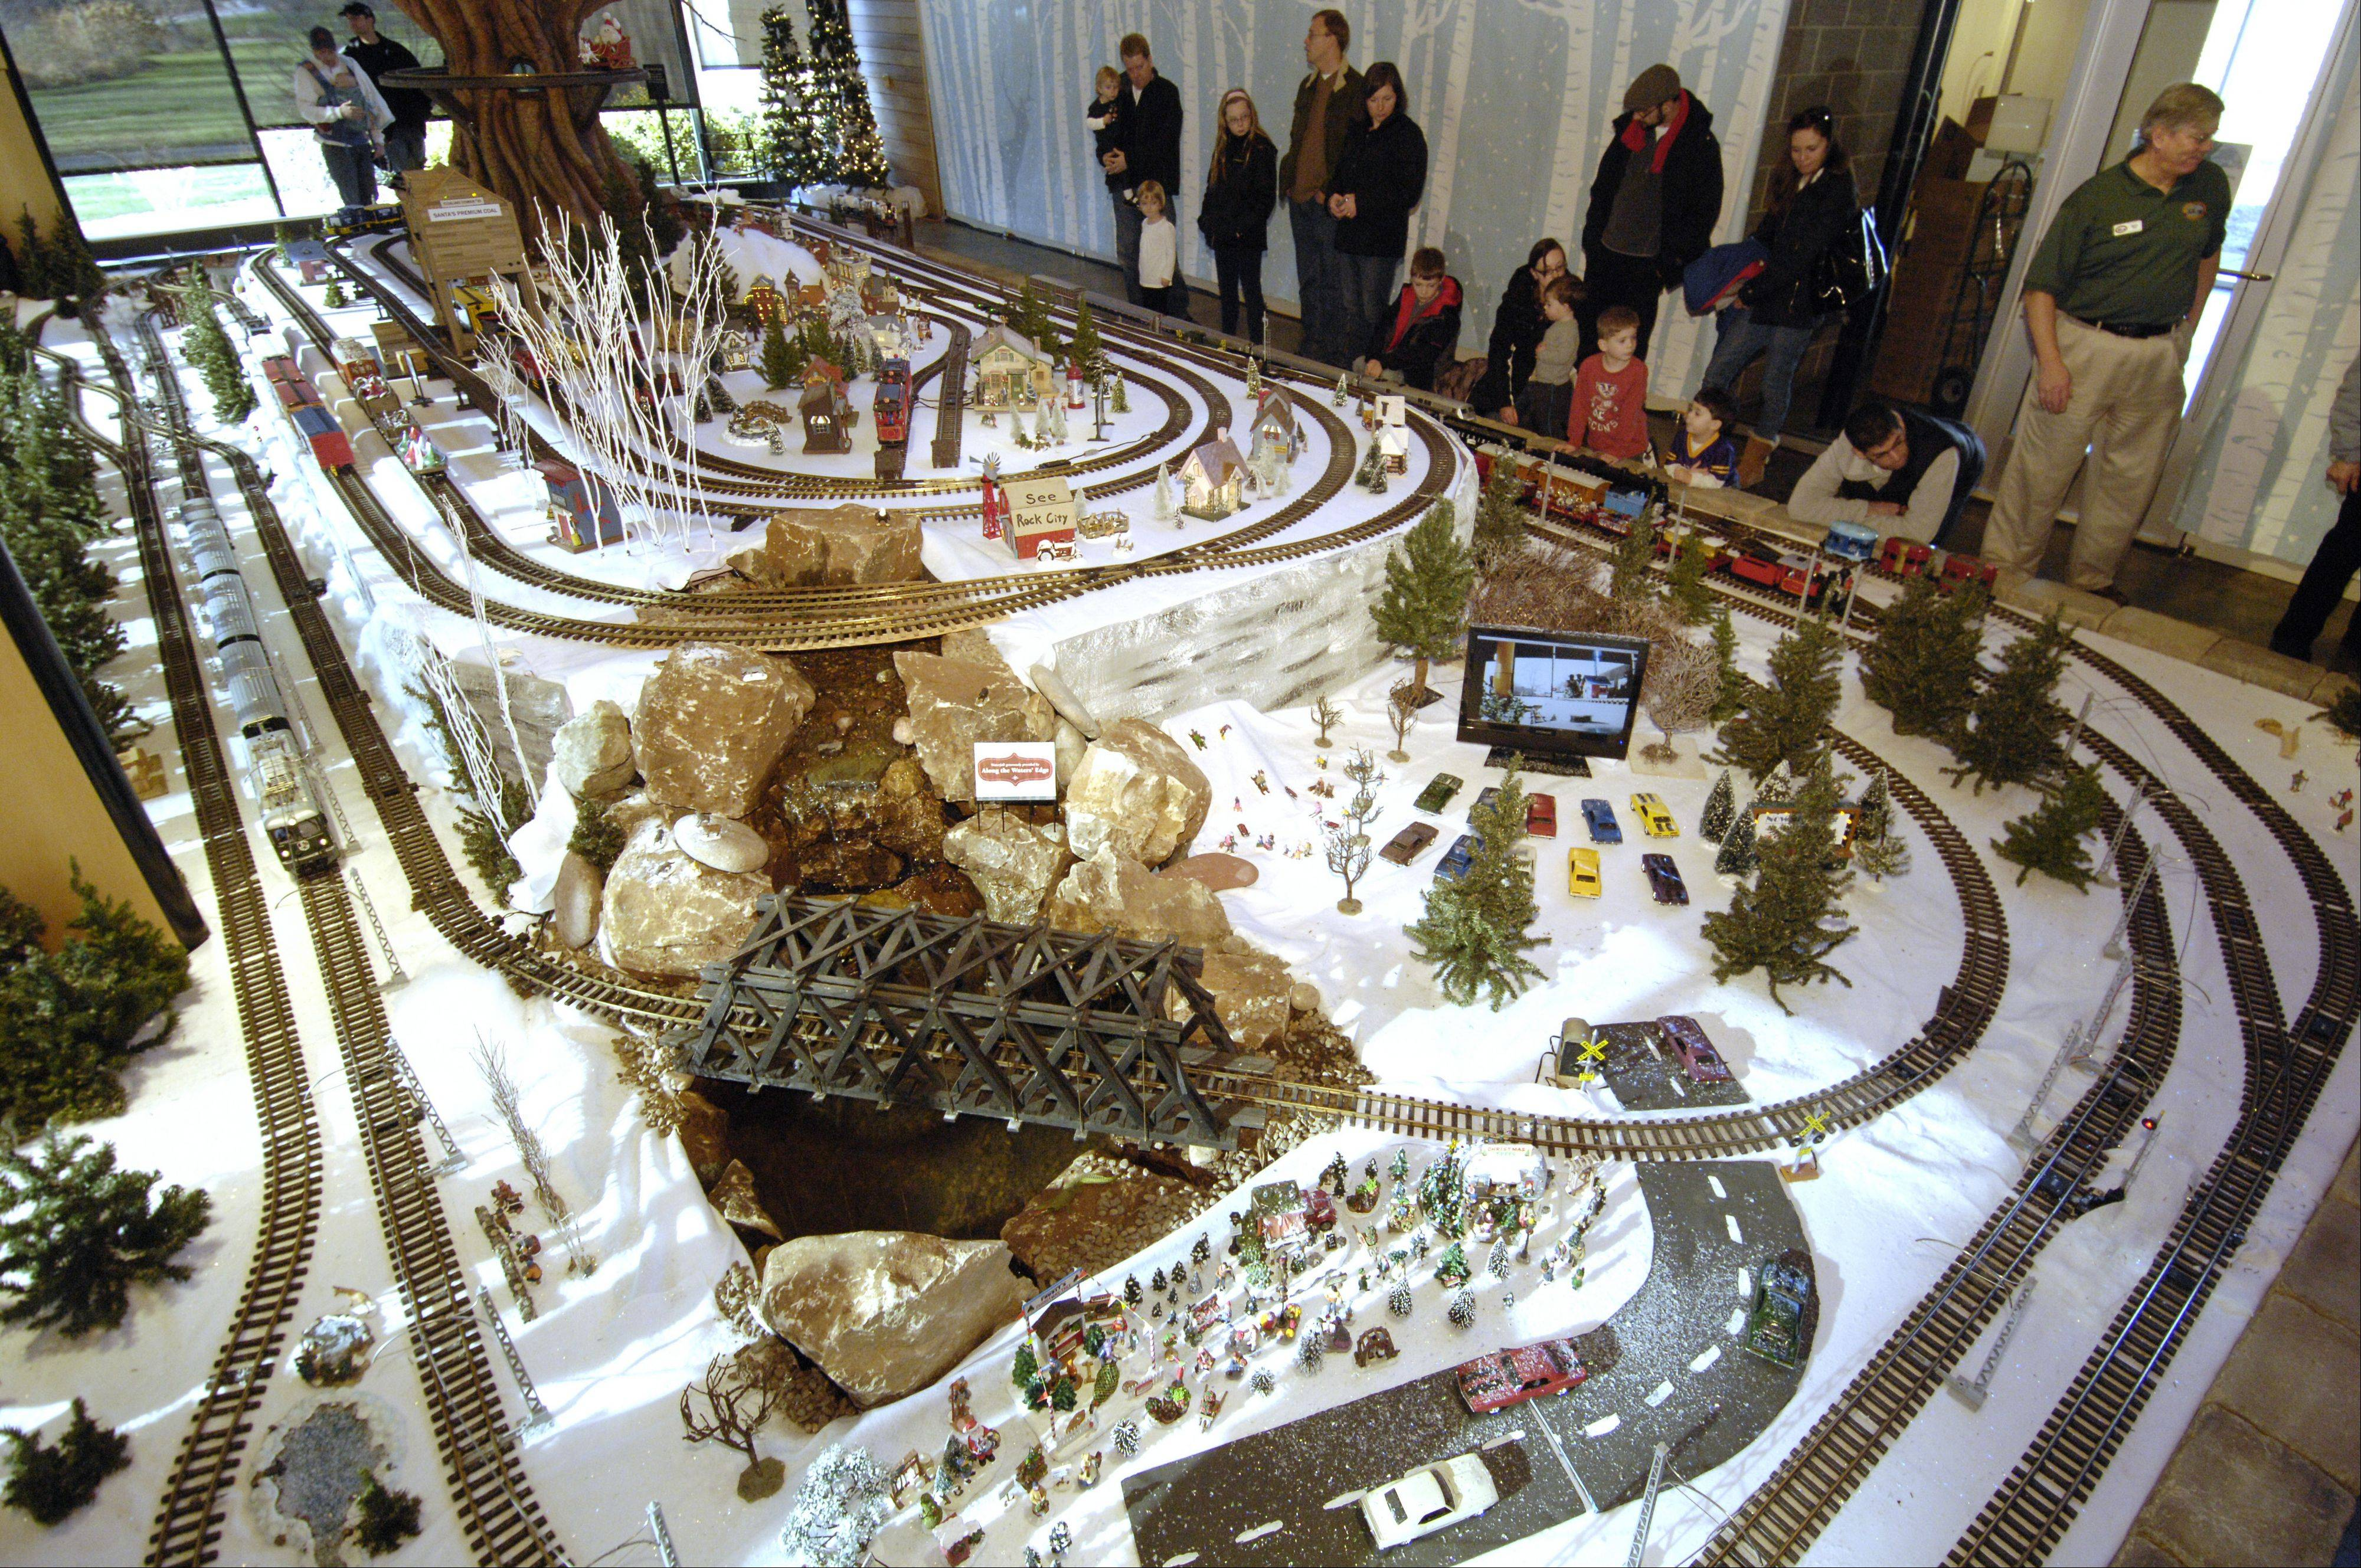 See a large model train run through a winter wonderland scene at the 12th annual Enchanted Railroad at the Morton Arboretum in Lisle.